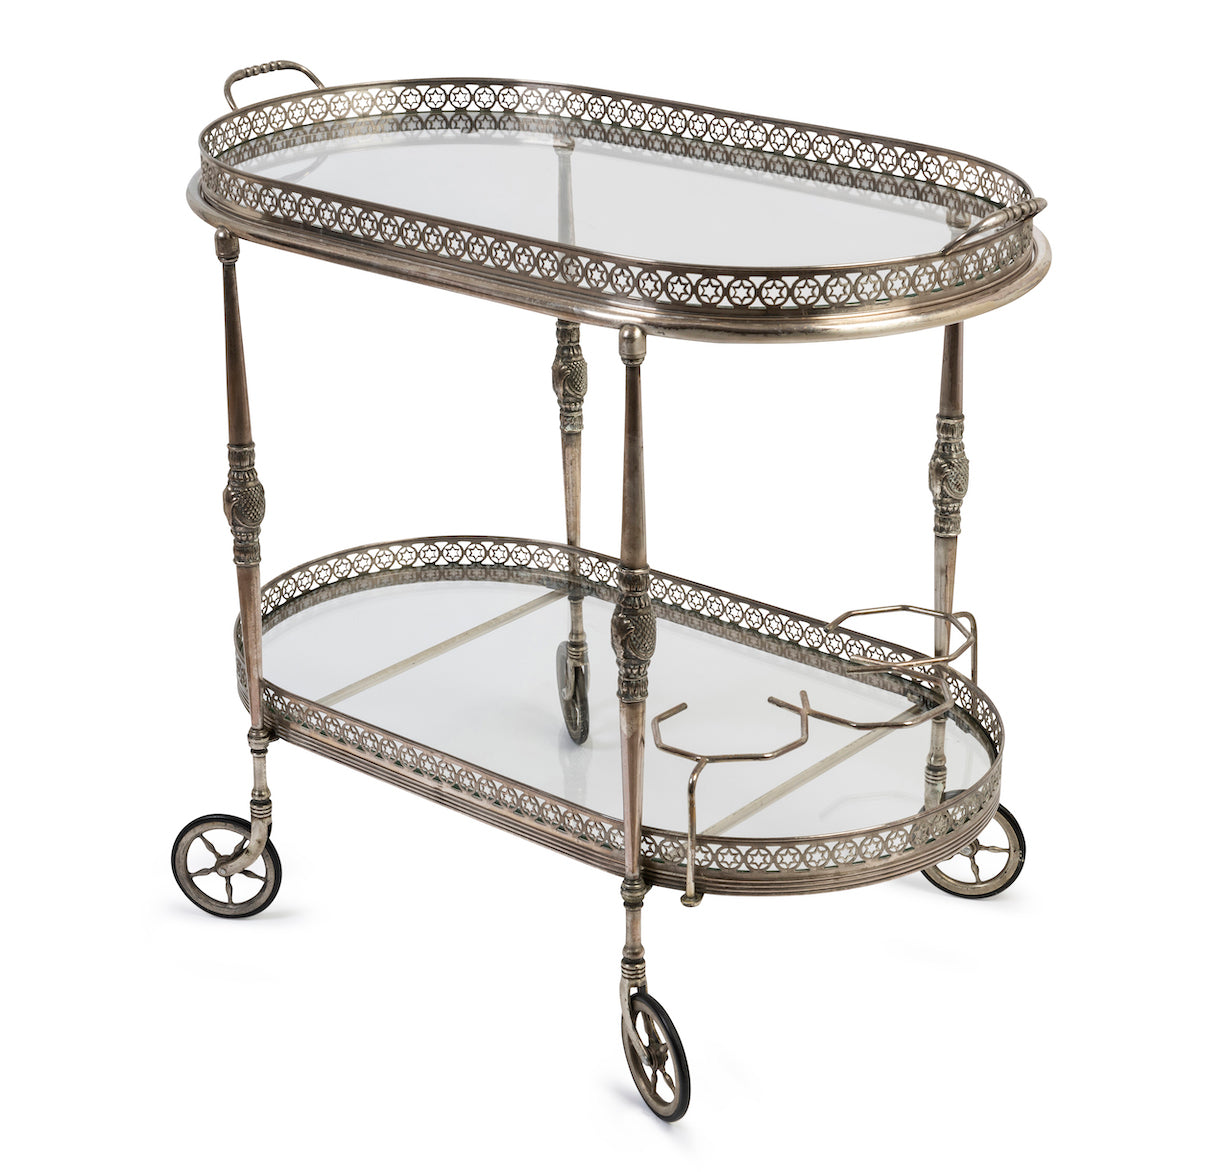 SOLD A fine quality silvered metal and glass two tier-oval drinks trolley,